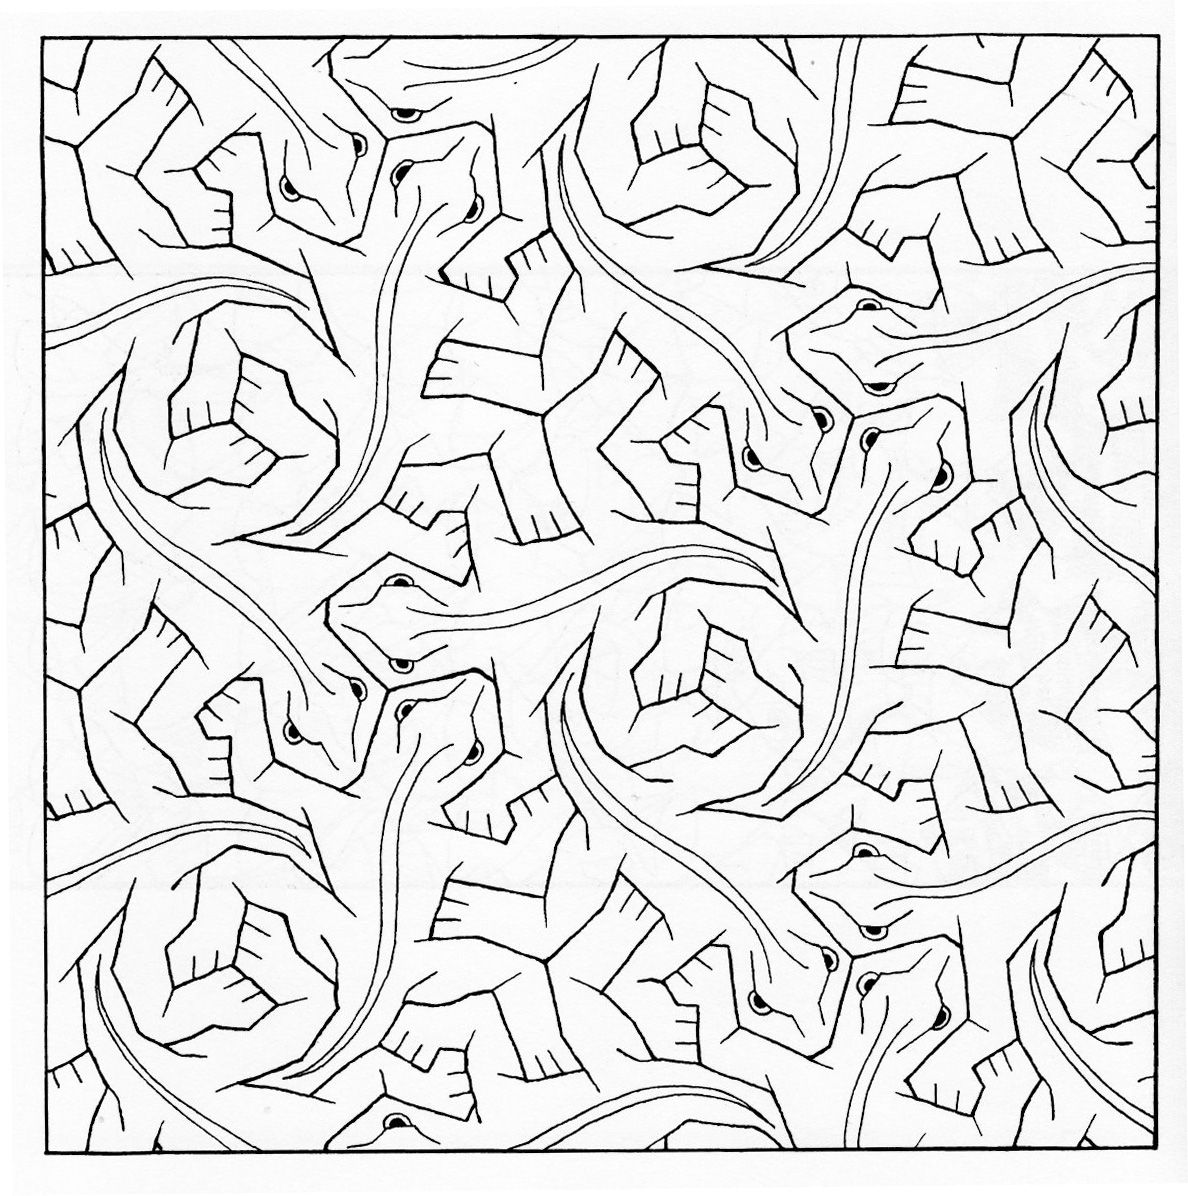 printable tessellation patterns to color escher fish tessellations templates sketch coloring page color tessellation to patterns printable